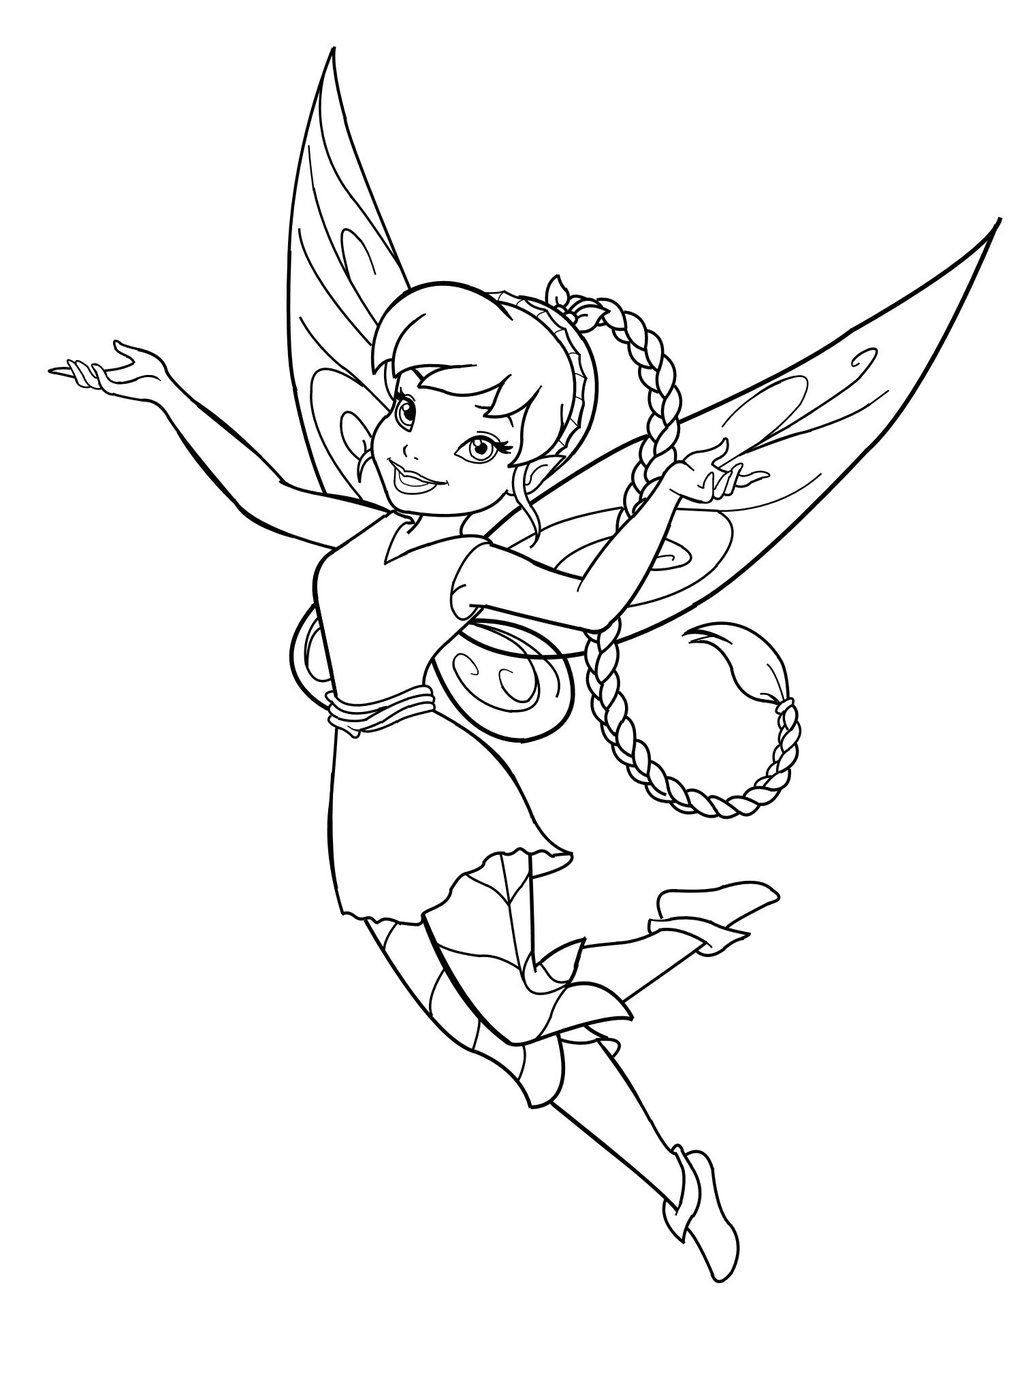 coloring page fairy - Fairies Coloring Pages